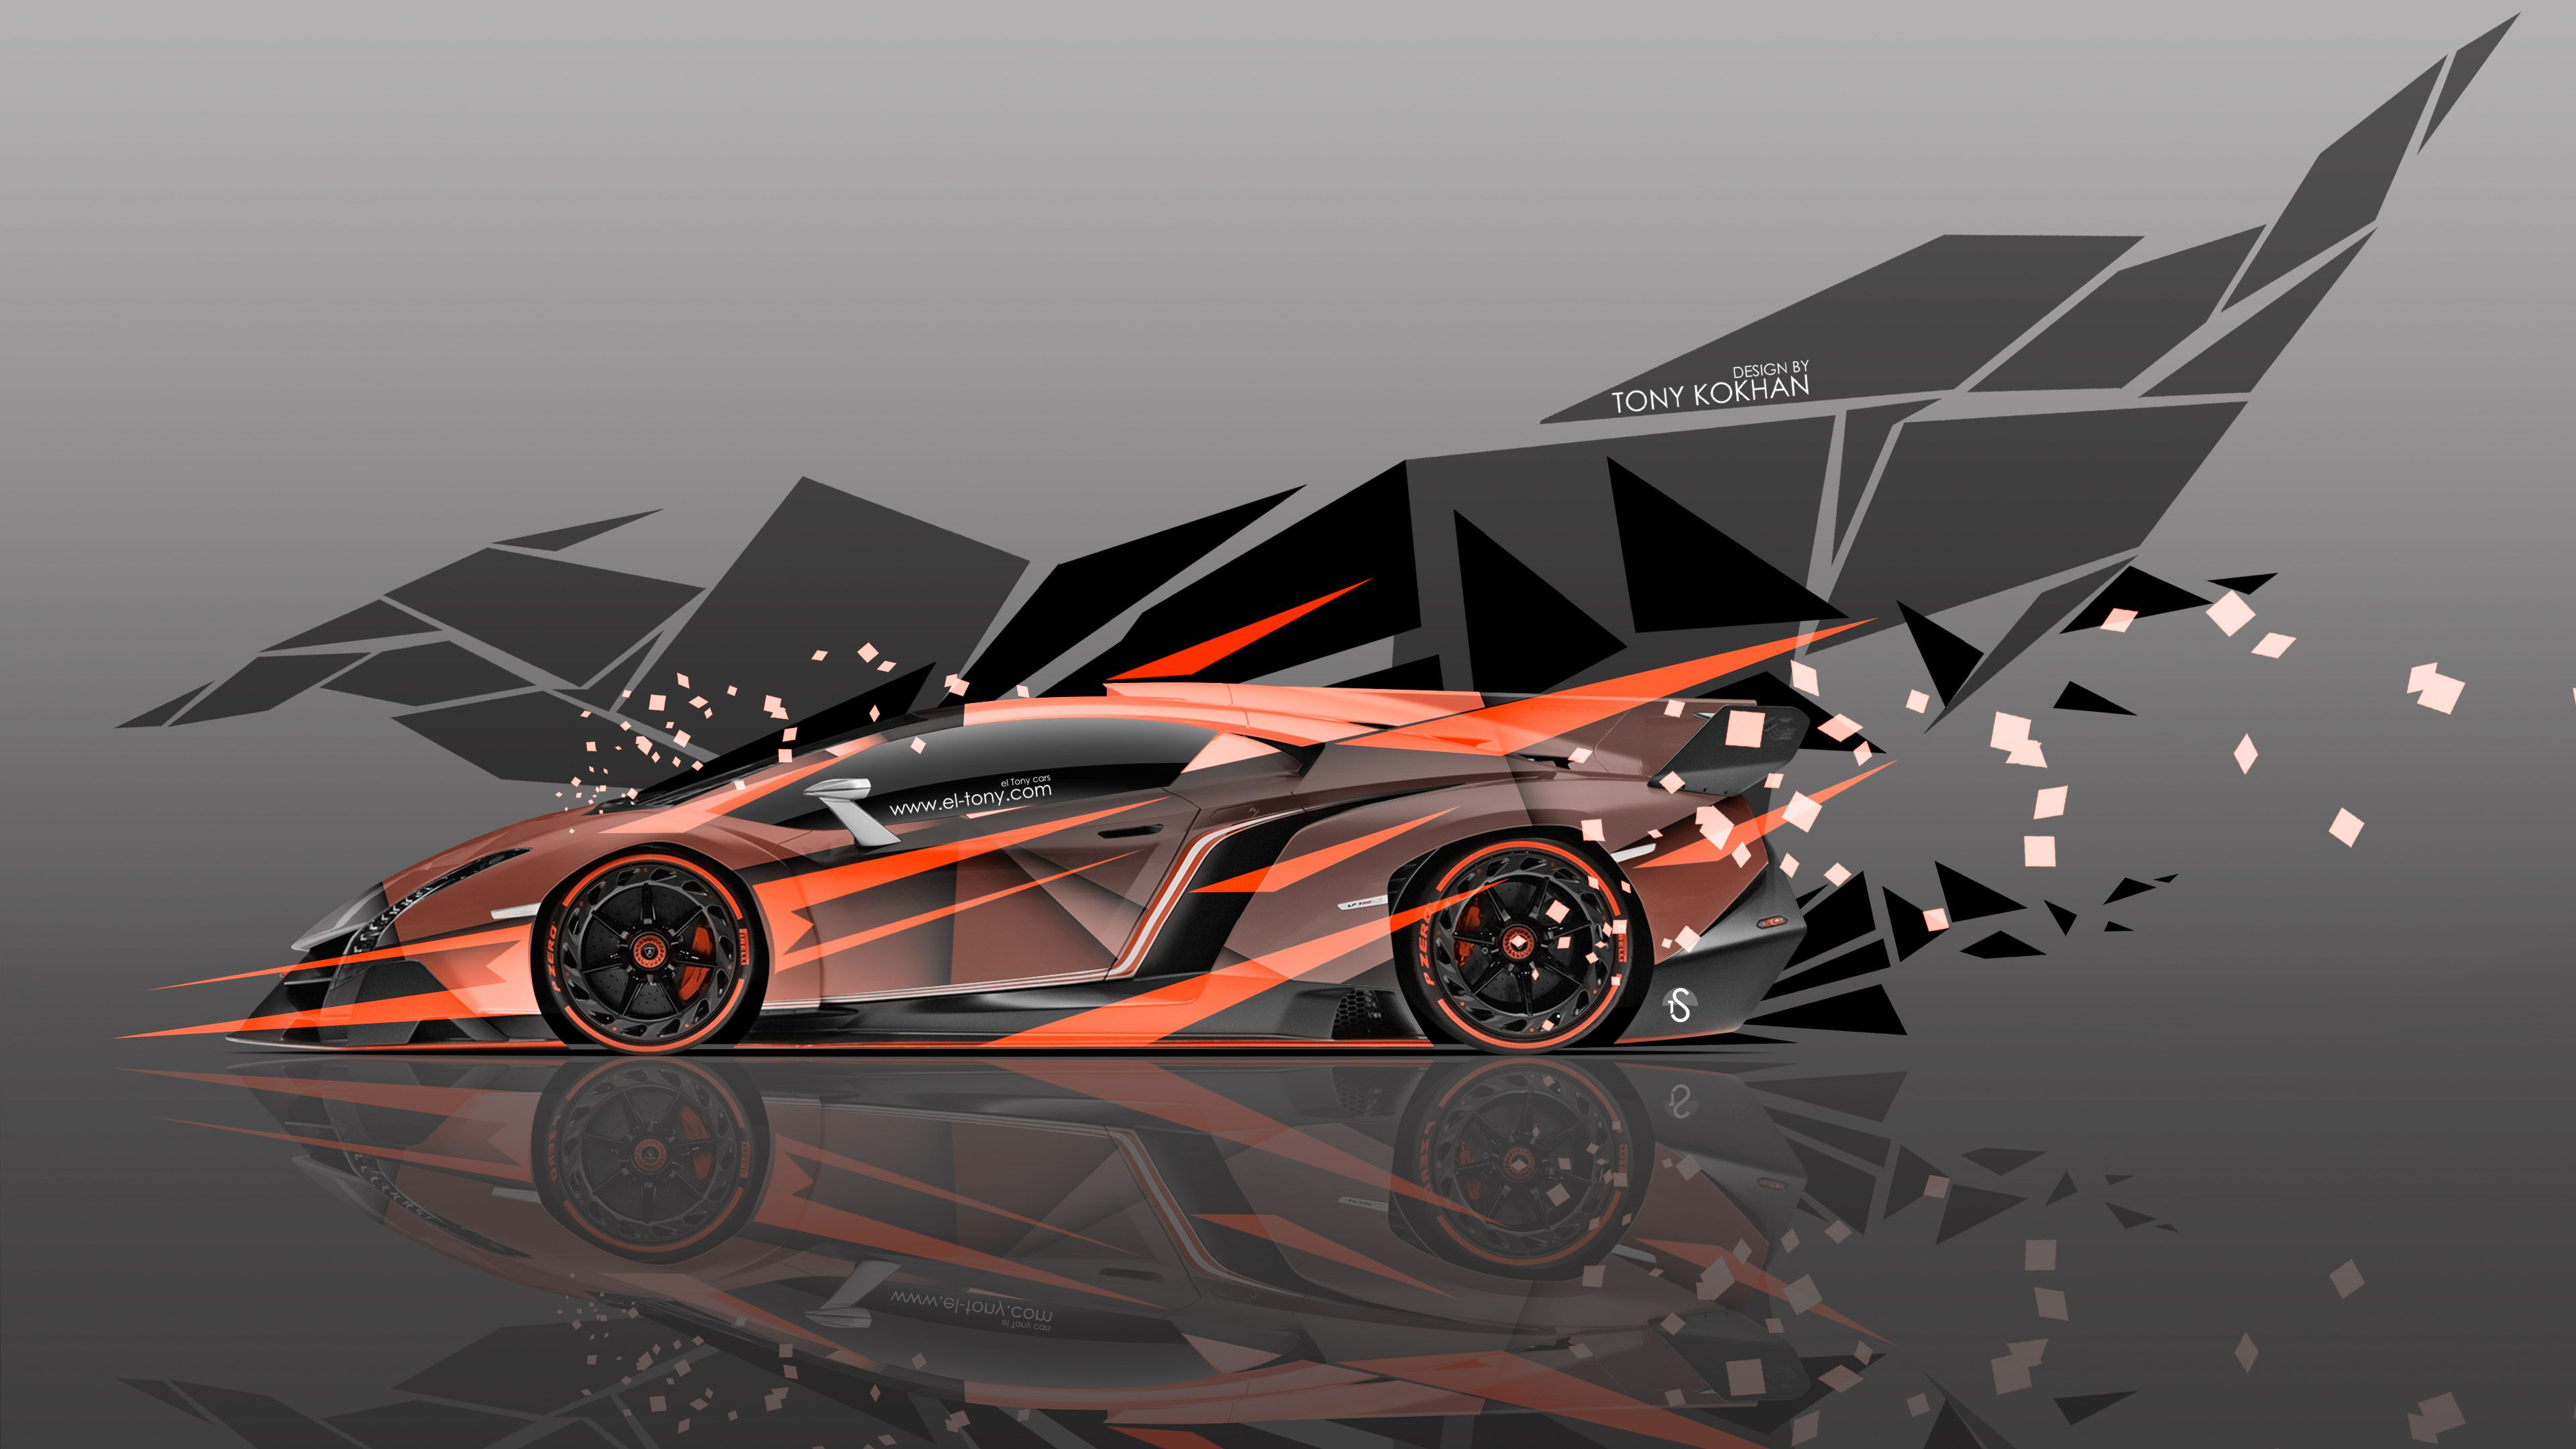 Lamborghini Veneno Side Super Abstract Transformer Aerography Car 2015 Orange Colors 4K Wallpapers Design By Tony Kokhan Www.el Tony.com_  (3840×2160)